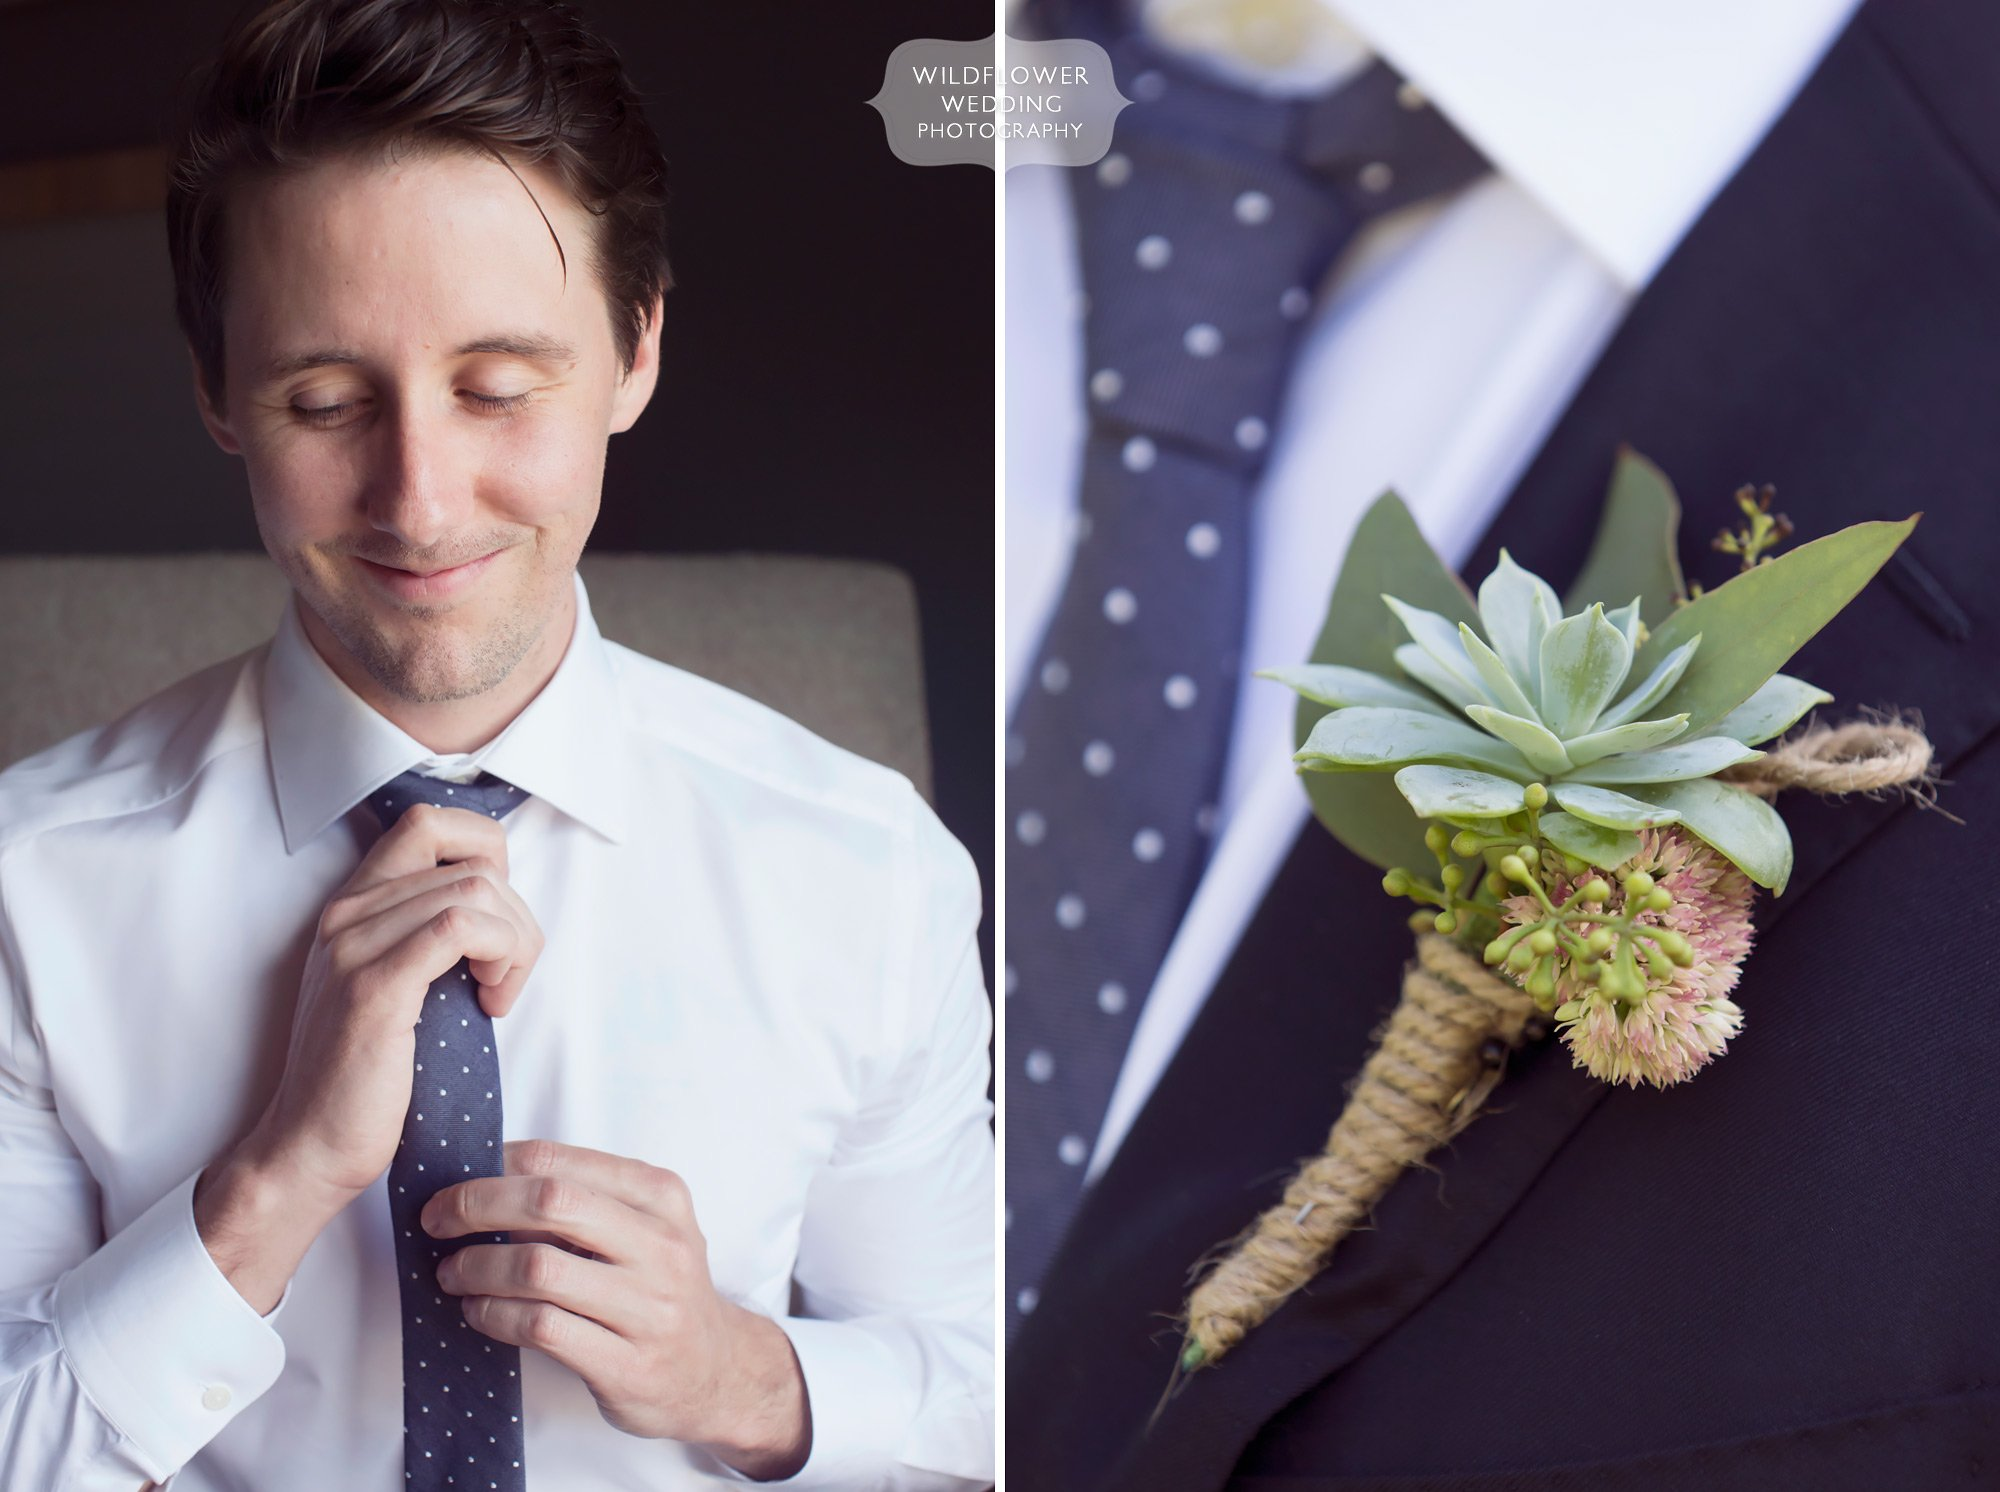 Artsy wedding photography of the groom getting ready with a succulent boutonniere and polka dot tie in Columbia, MO.